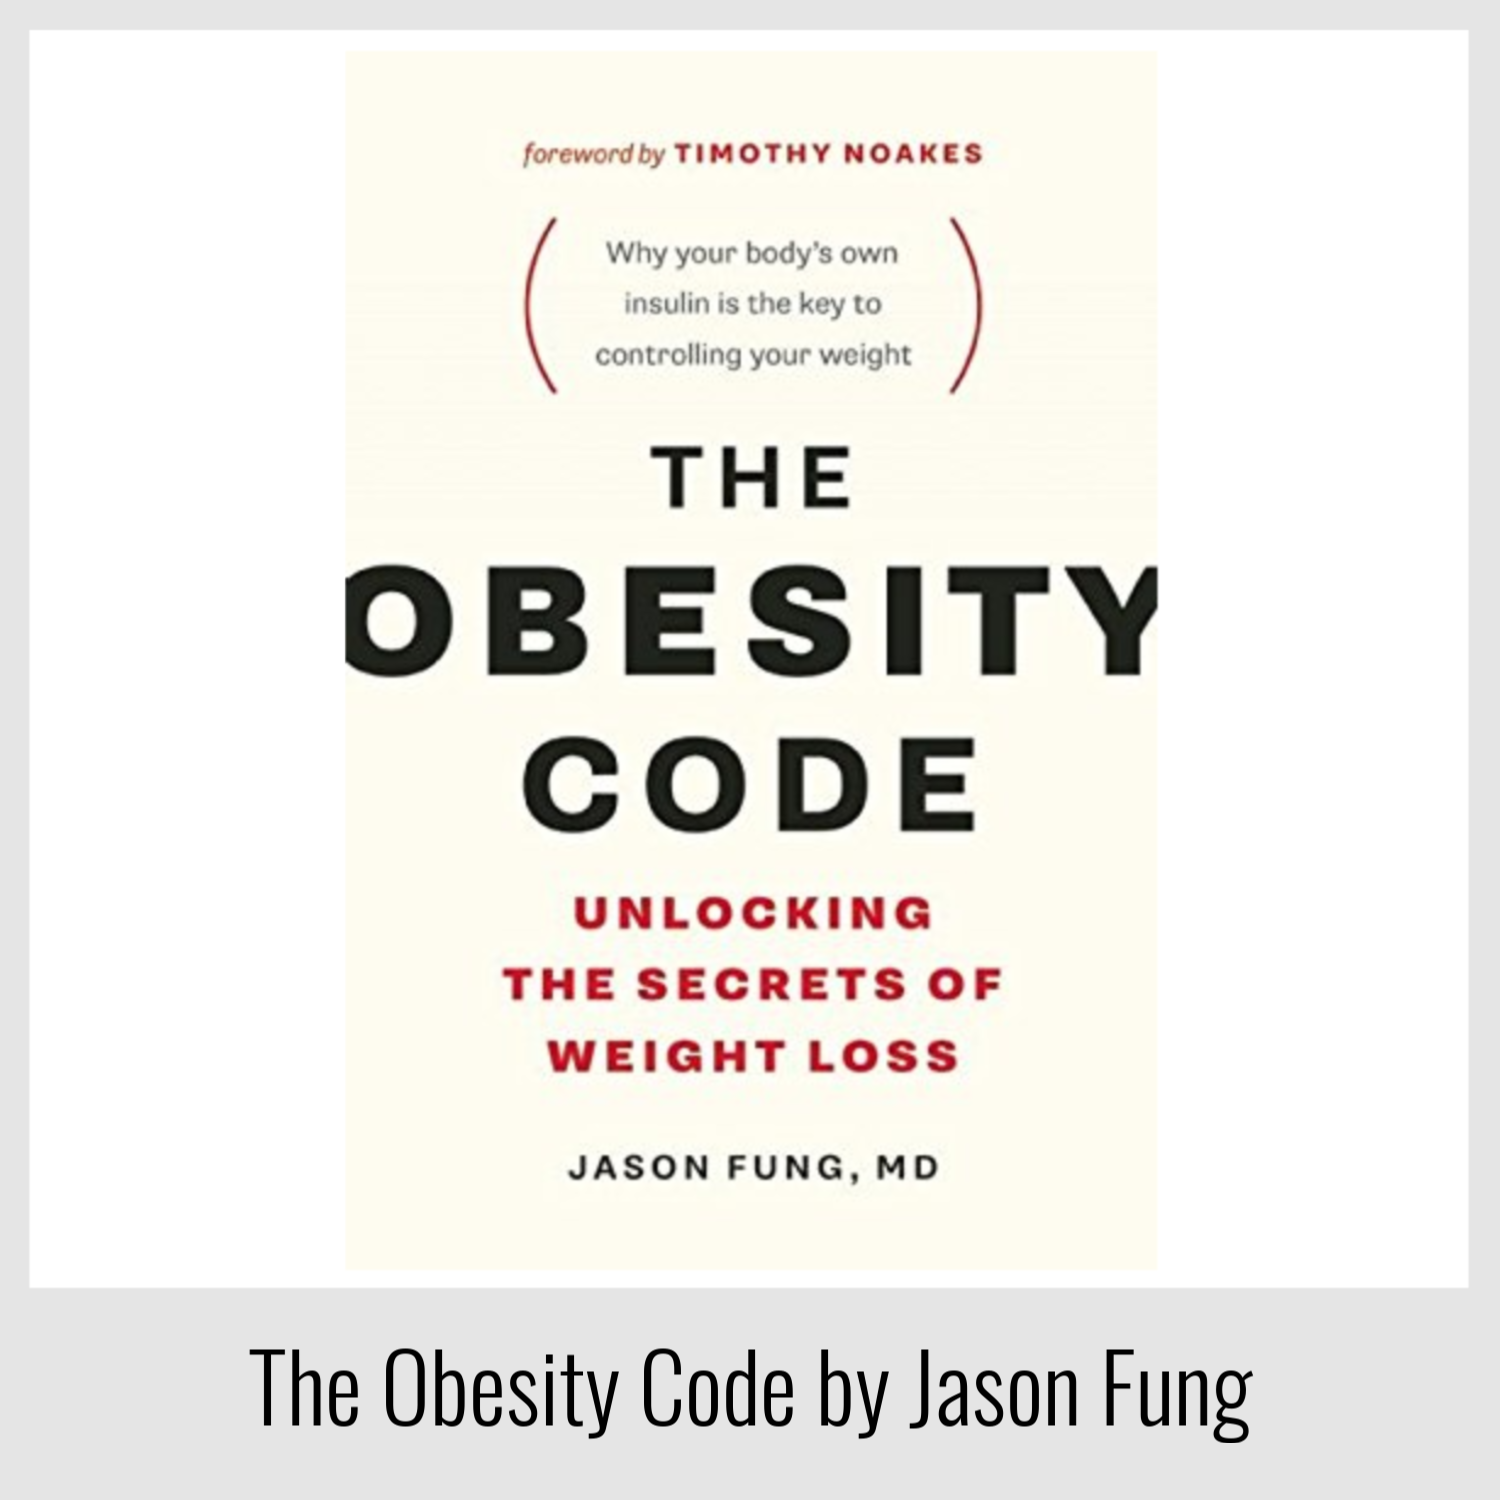 obesity code.png